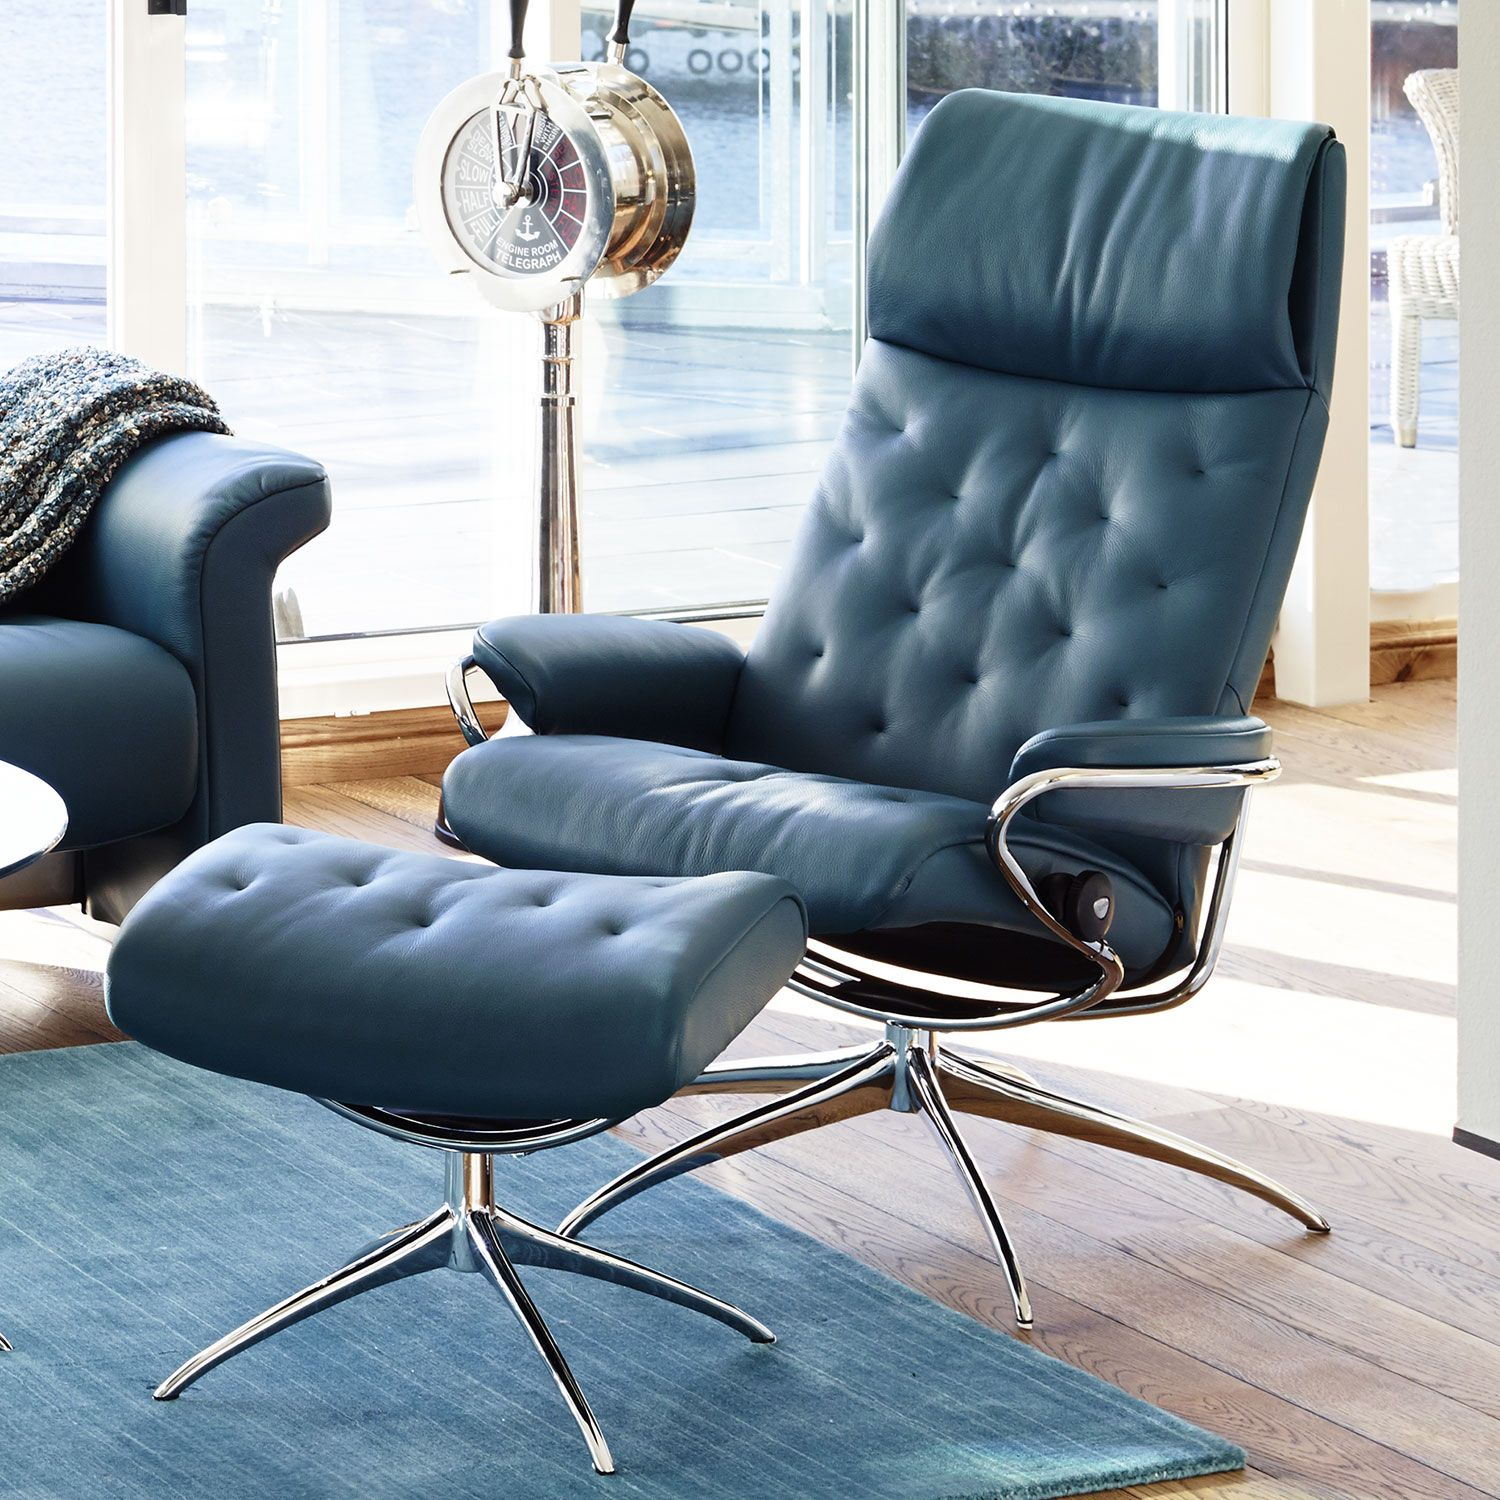 Stressless Sessel Metro High Back Stressless Metro Sessel Zuhause Image Idee